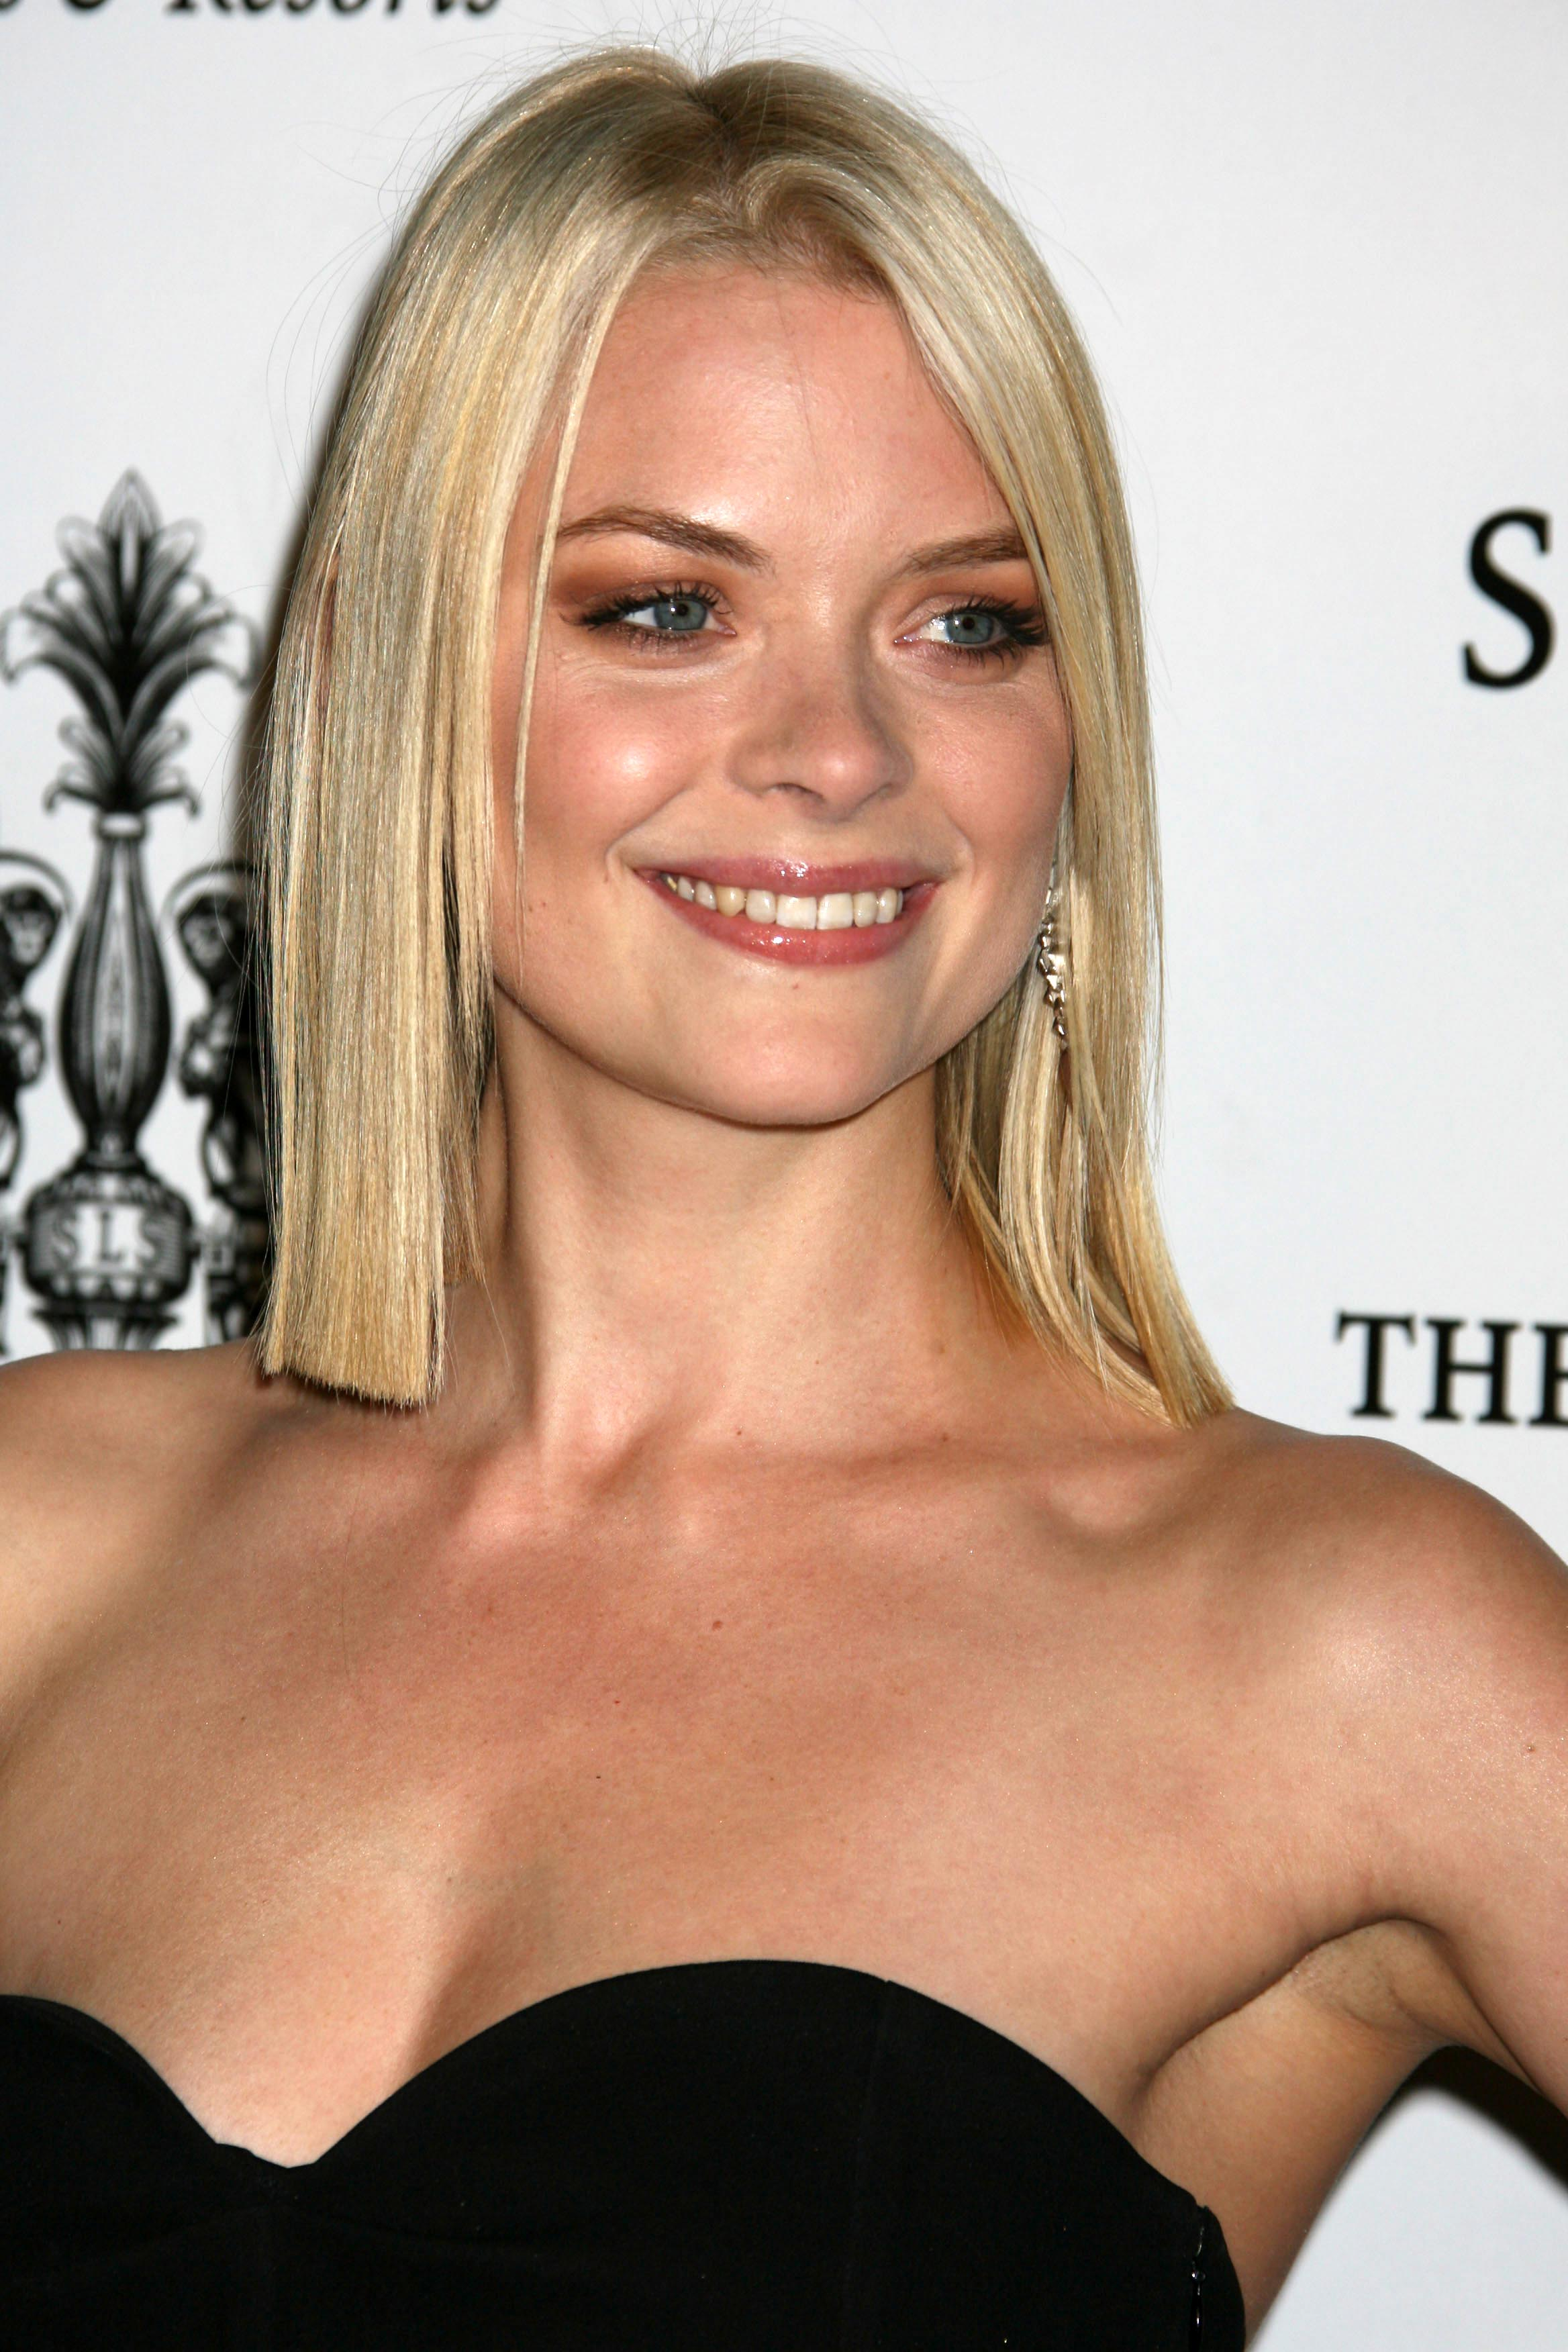 Jaime King - Total Movies Wiki